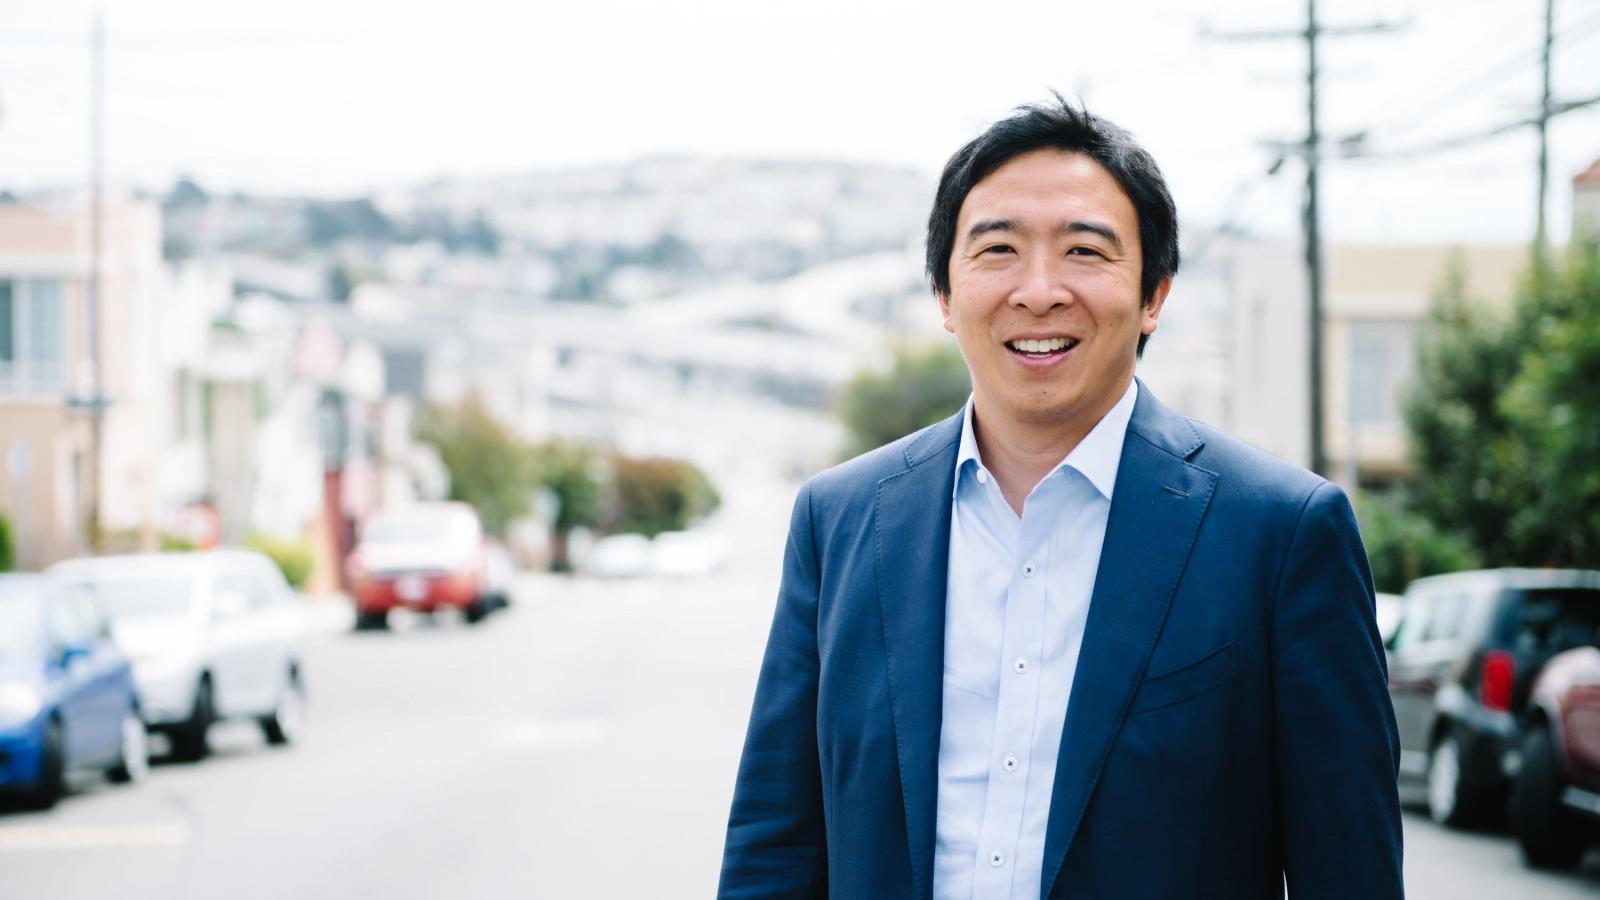 Why Bitcoin Price Would Skyrocket If Andrew Yang Becomes ...